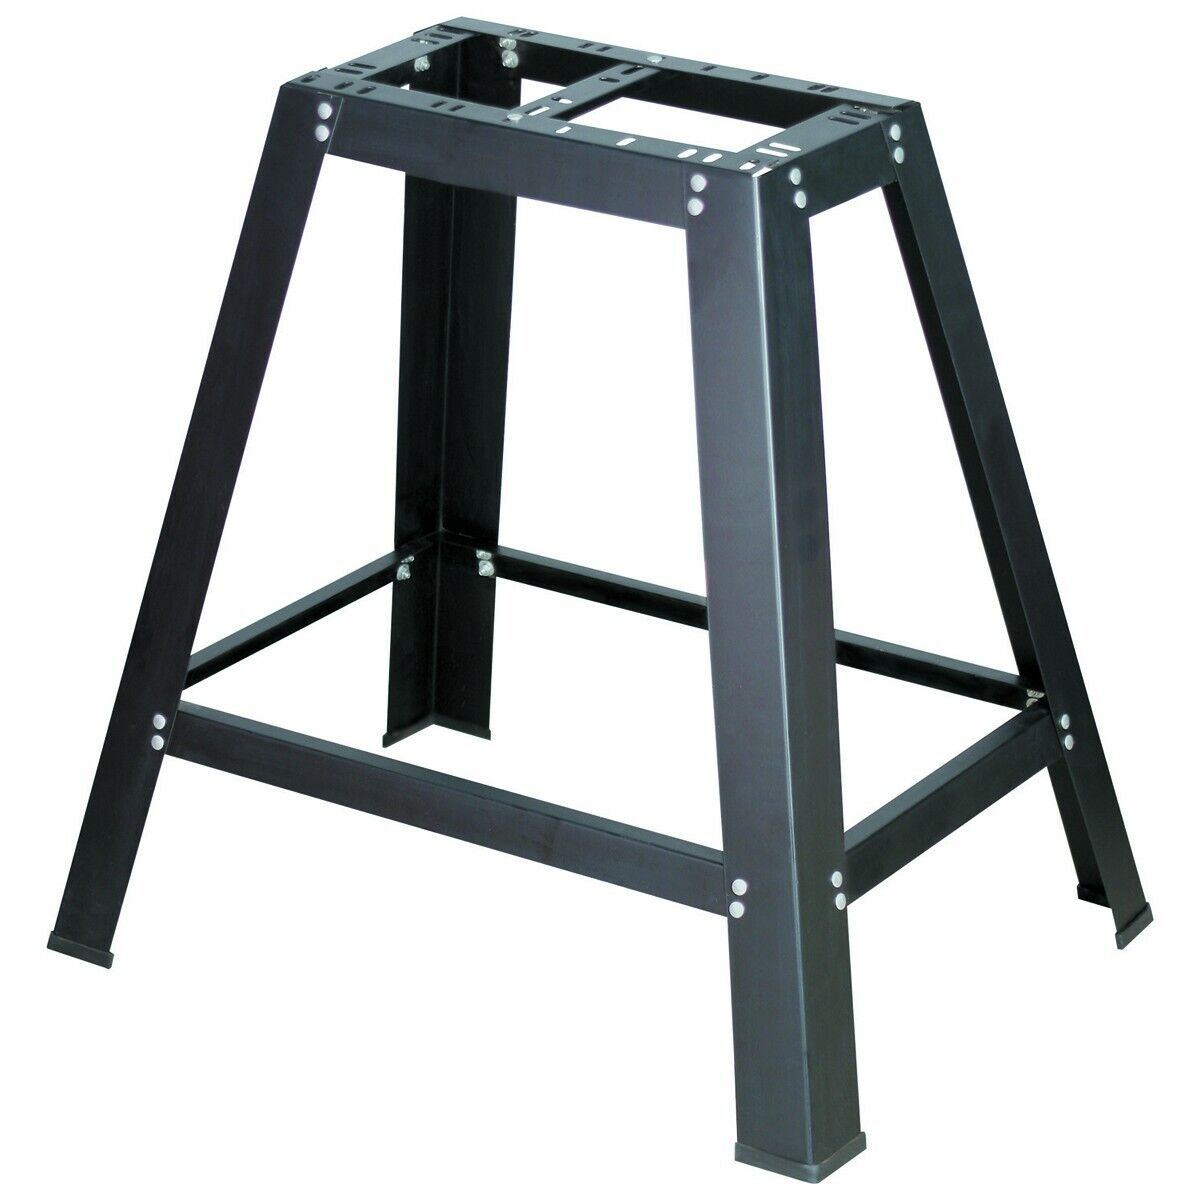 Stand Universal 29 In. Heavy Duty Tool Stand scroll saw, ban